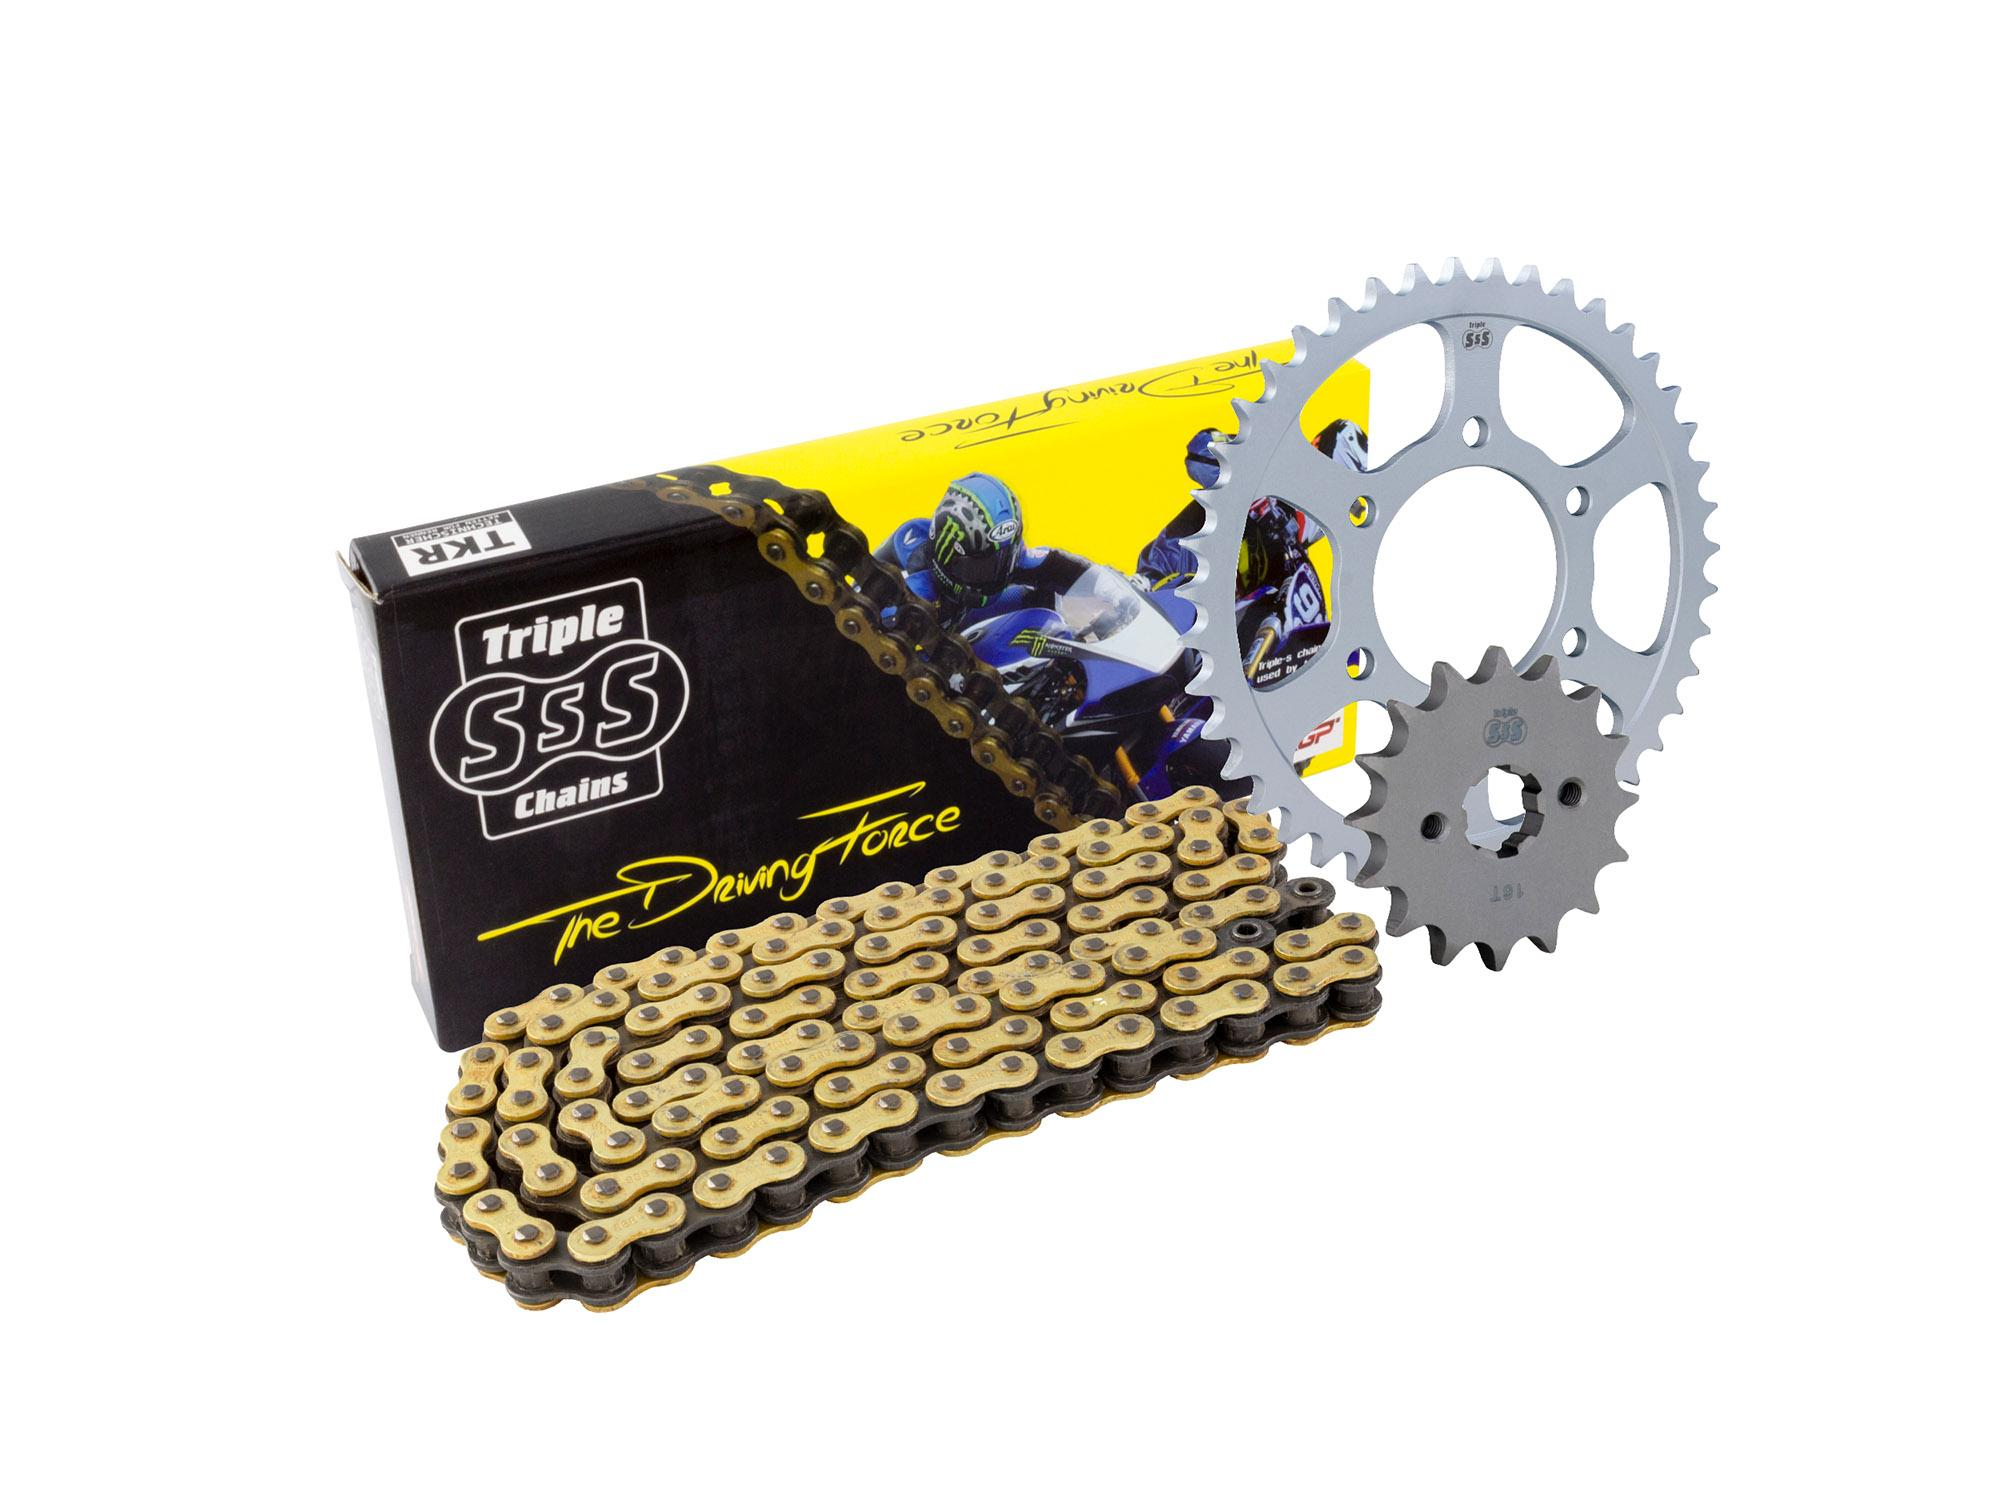 Kawasaki ZX-10R D6F-D7F Ninja 06-07 Chain & Sprocket Kit: 17T Front, 40T Rear, HD O-Ring Gold Chain 525H 108Link